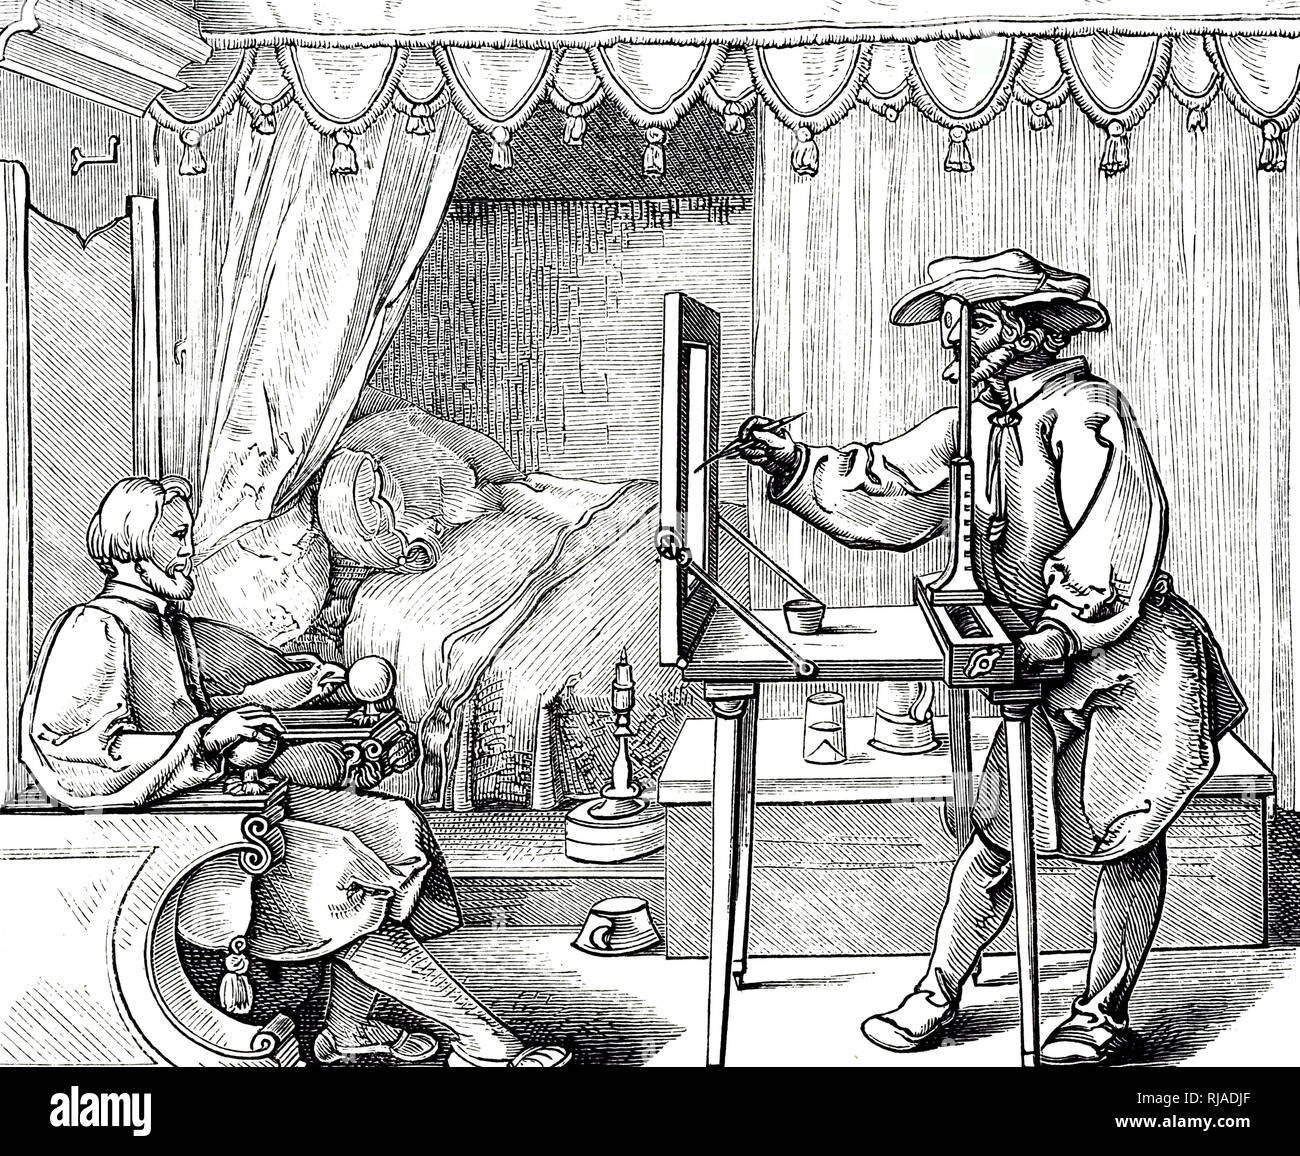 A woodcut engraving depicting an artist using a drawing aid to get the proportions of a portrait correct. Engraving by Albrecht Dürer (1471-1528) a German painter, printmaker, and theorist of the Renaissance. Dated 17th century Stock Photo